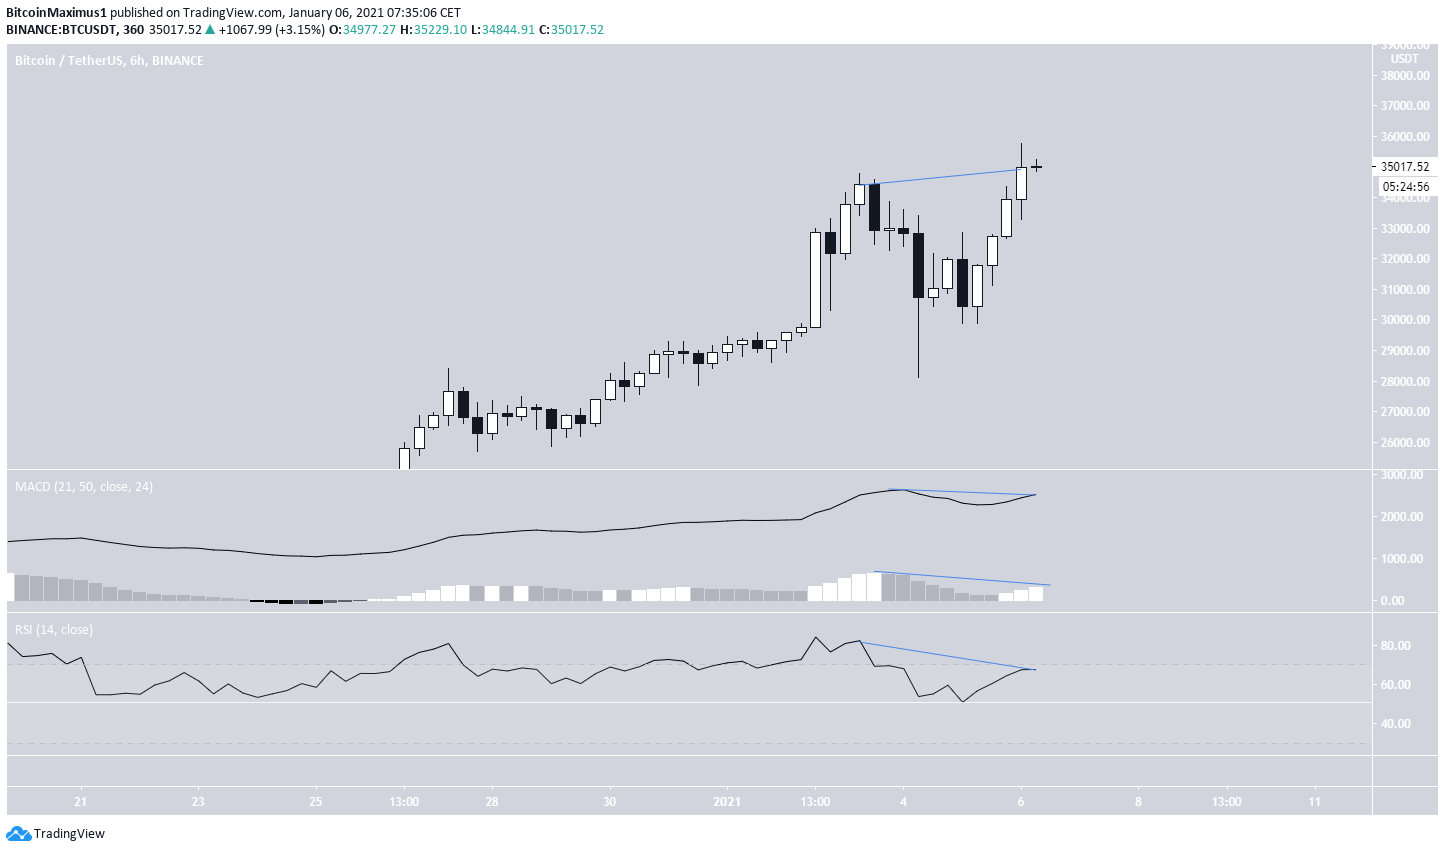 BTC Bearish Divergence